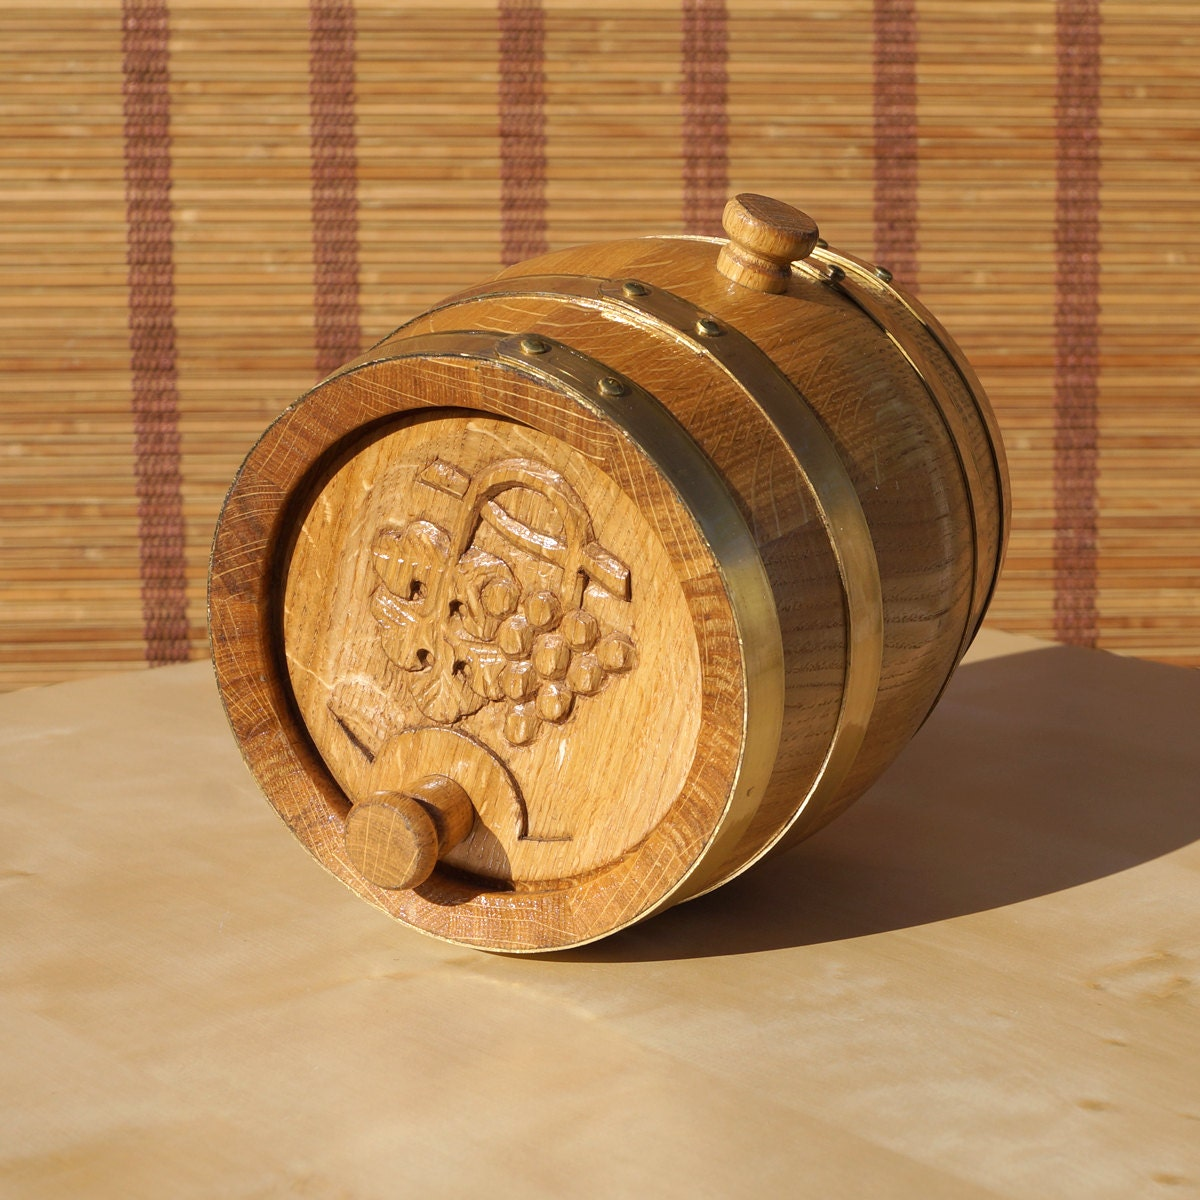 Small Wooden Barrel With Brass Rings Vintage